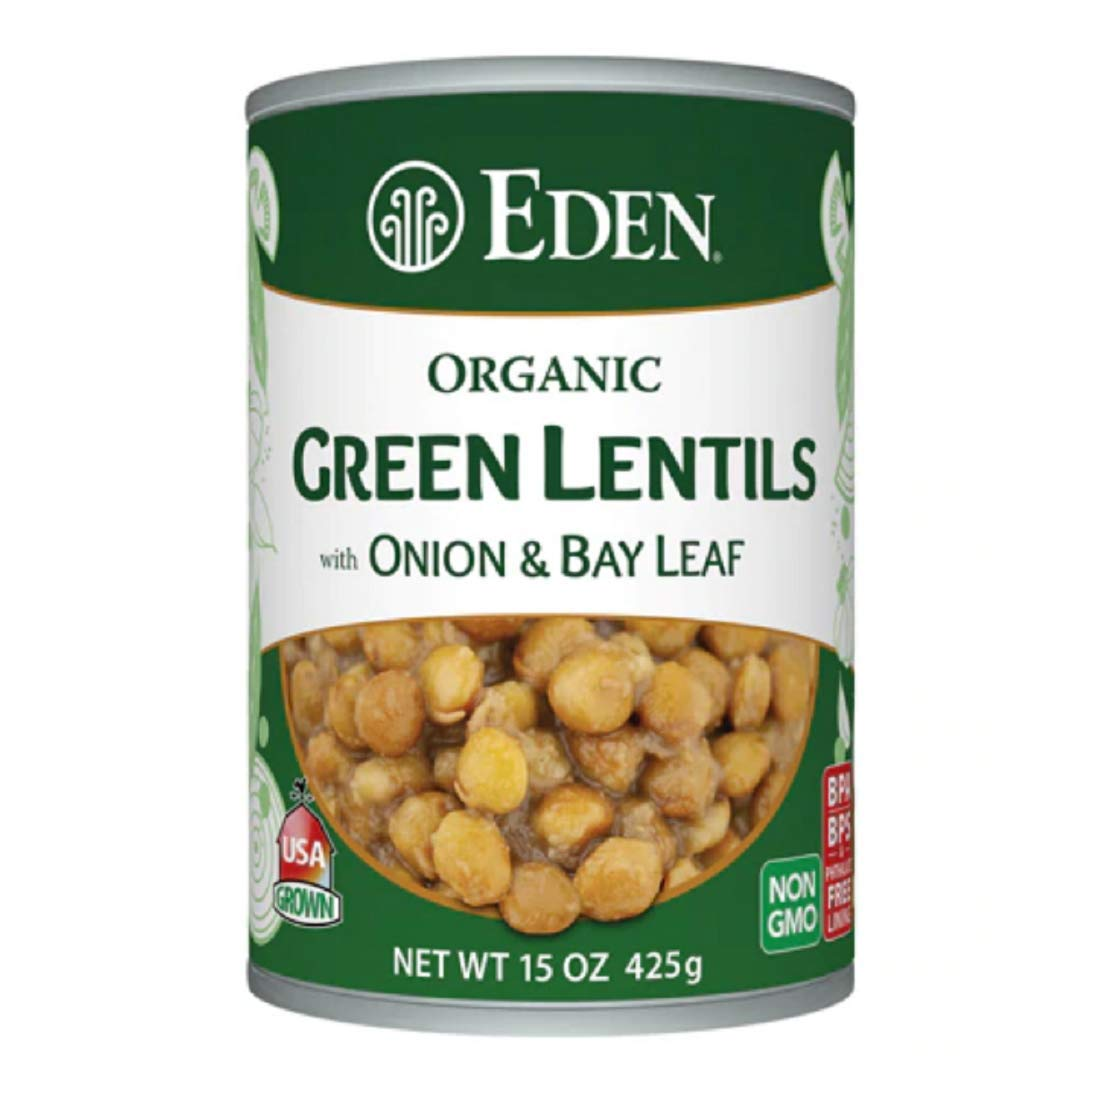 Eden Organic Lentils with Onion and Bay Leaf, 15-Ounce Cans (Pack of 12)